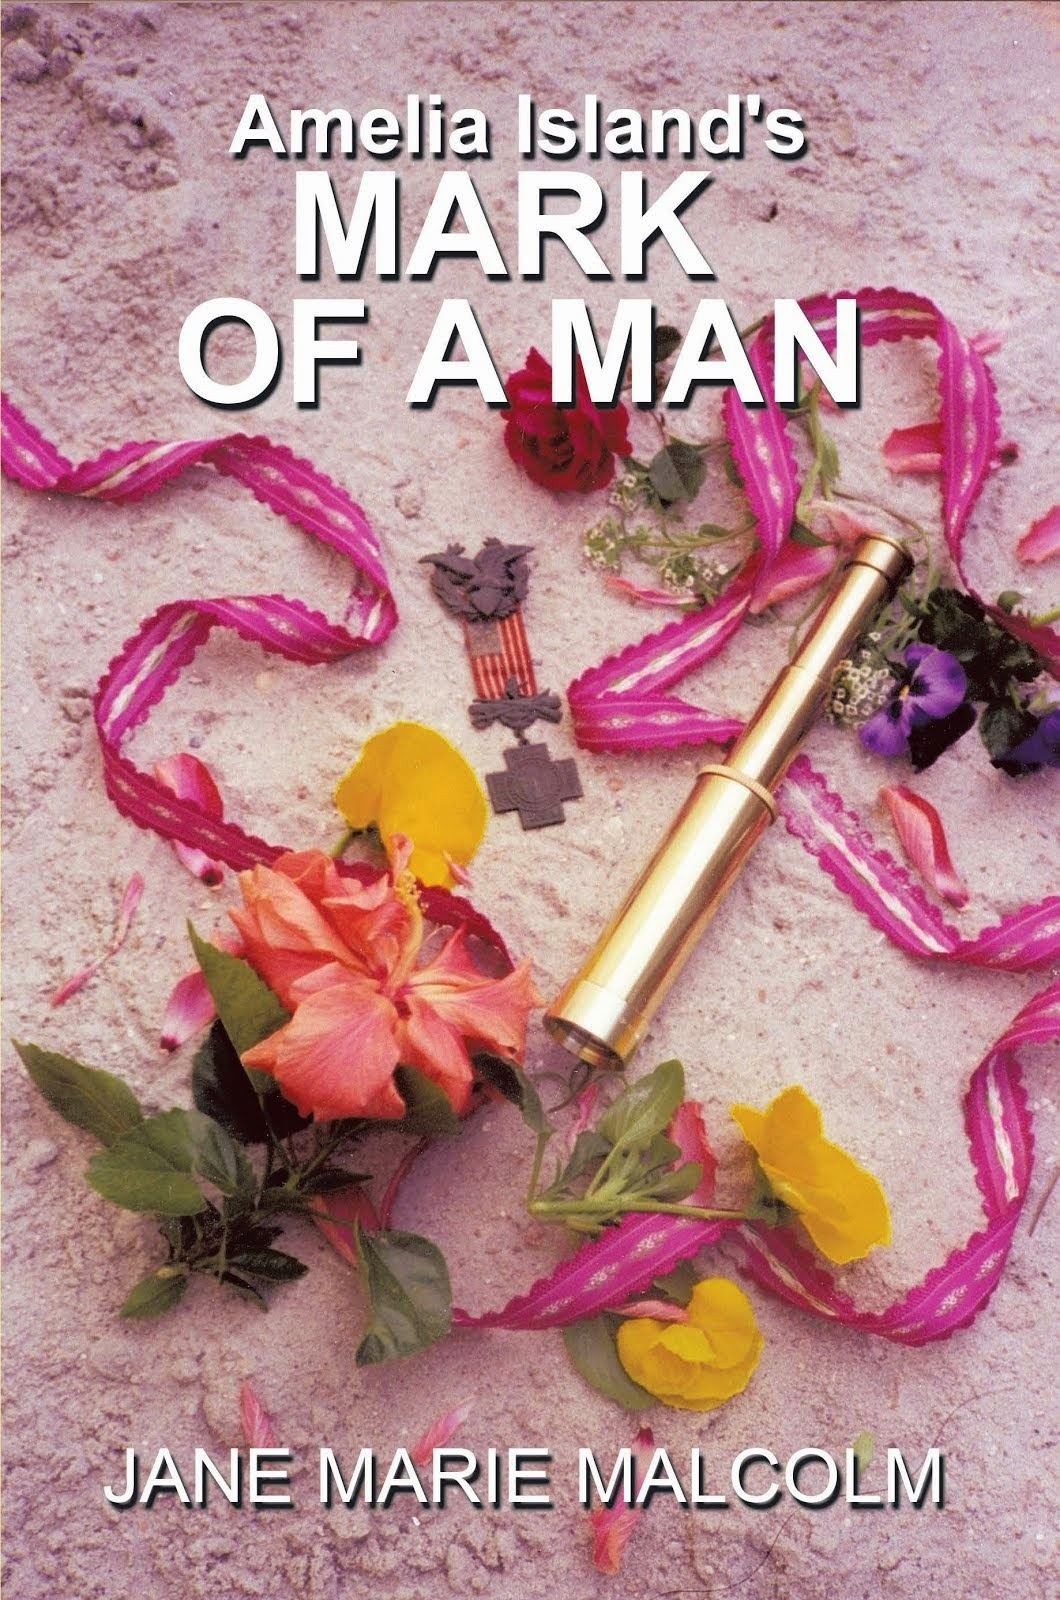 LATEST RELEASE - Amelia Island's MARK OF A MAN, the RAINS, the RAGE, the ROMANCE - ebook-$3.99